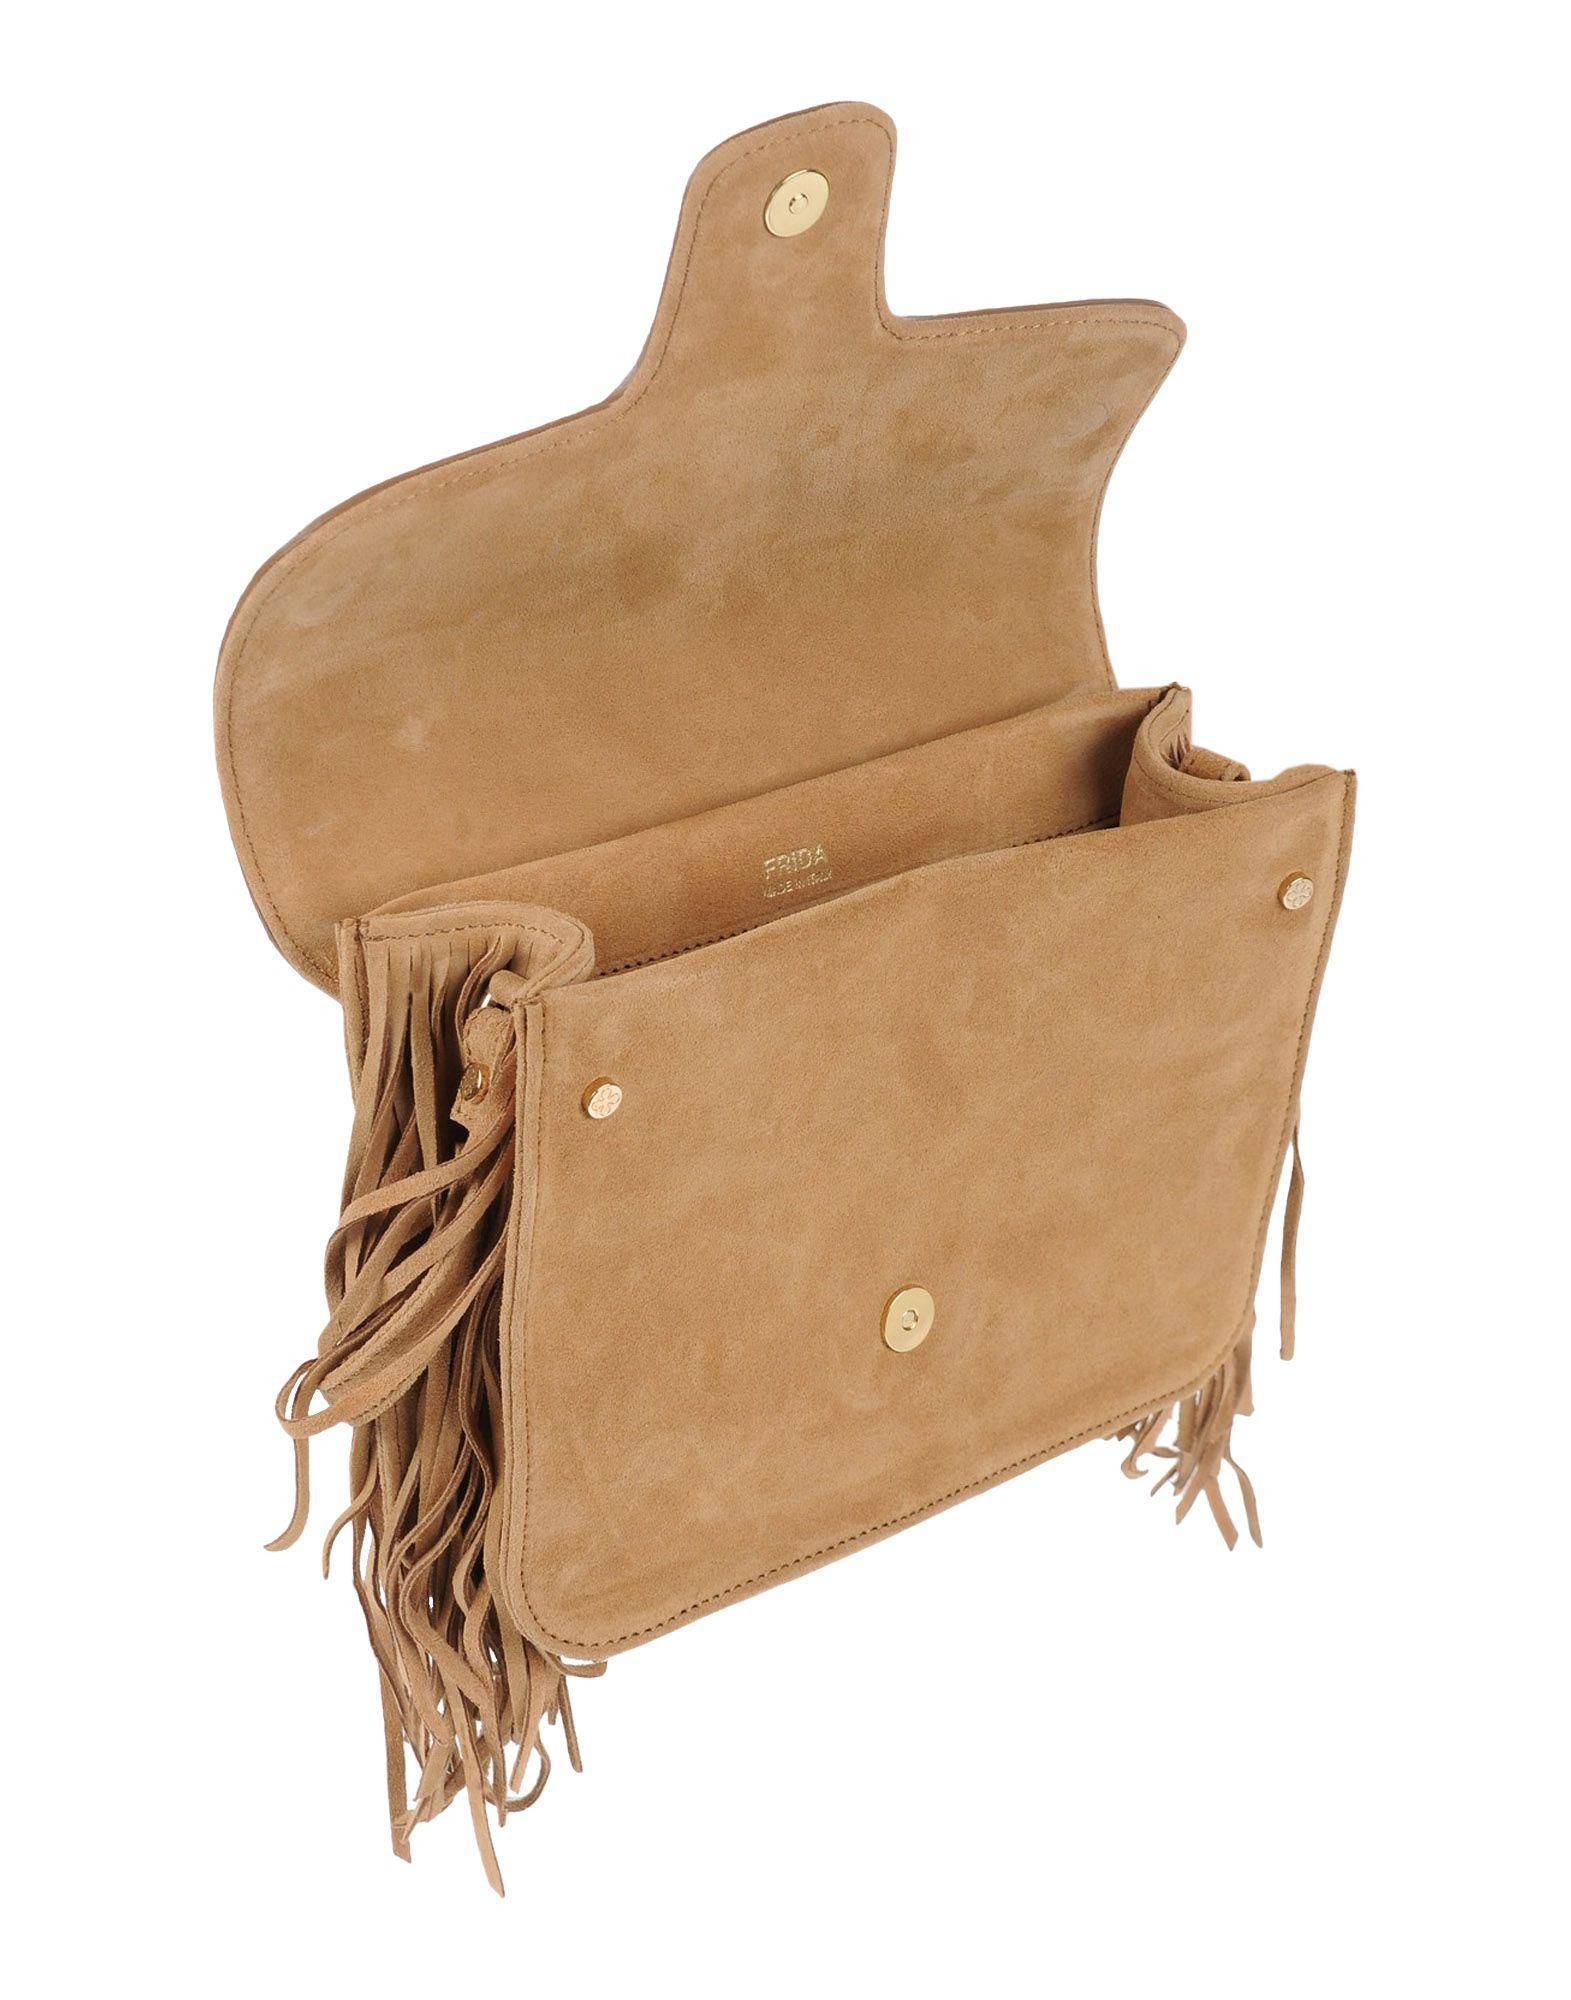 de2d56ae012 Lyst - V73 Cross-body Bag in Natural